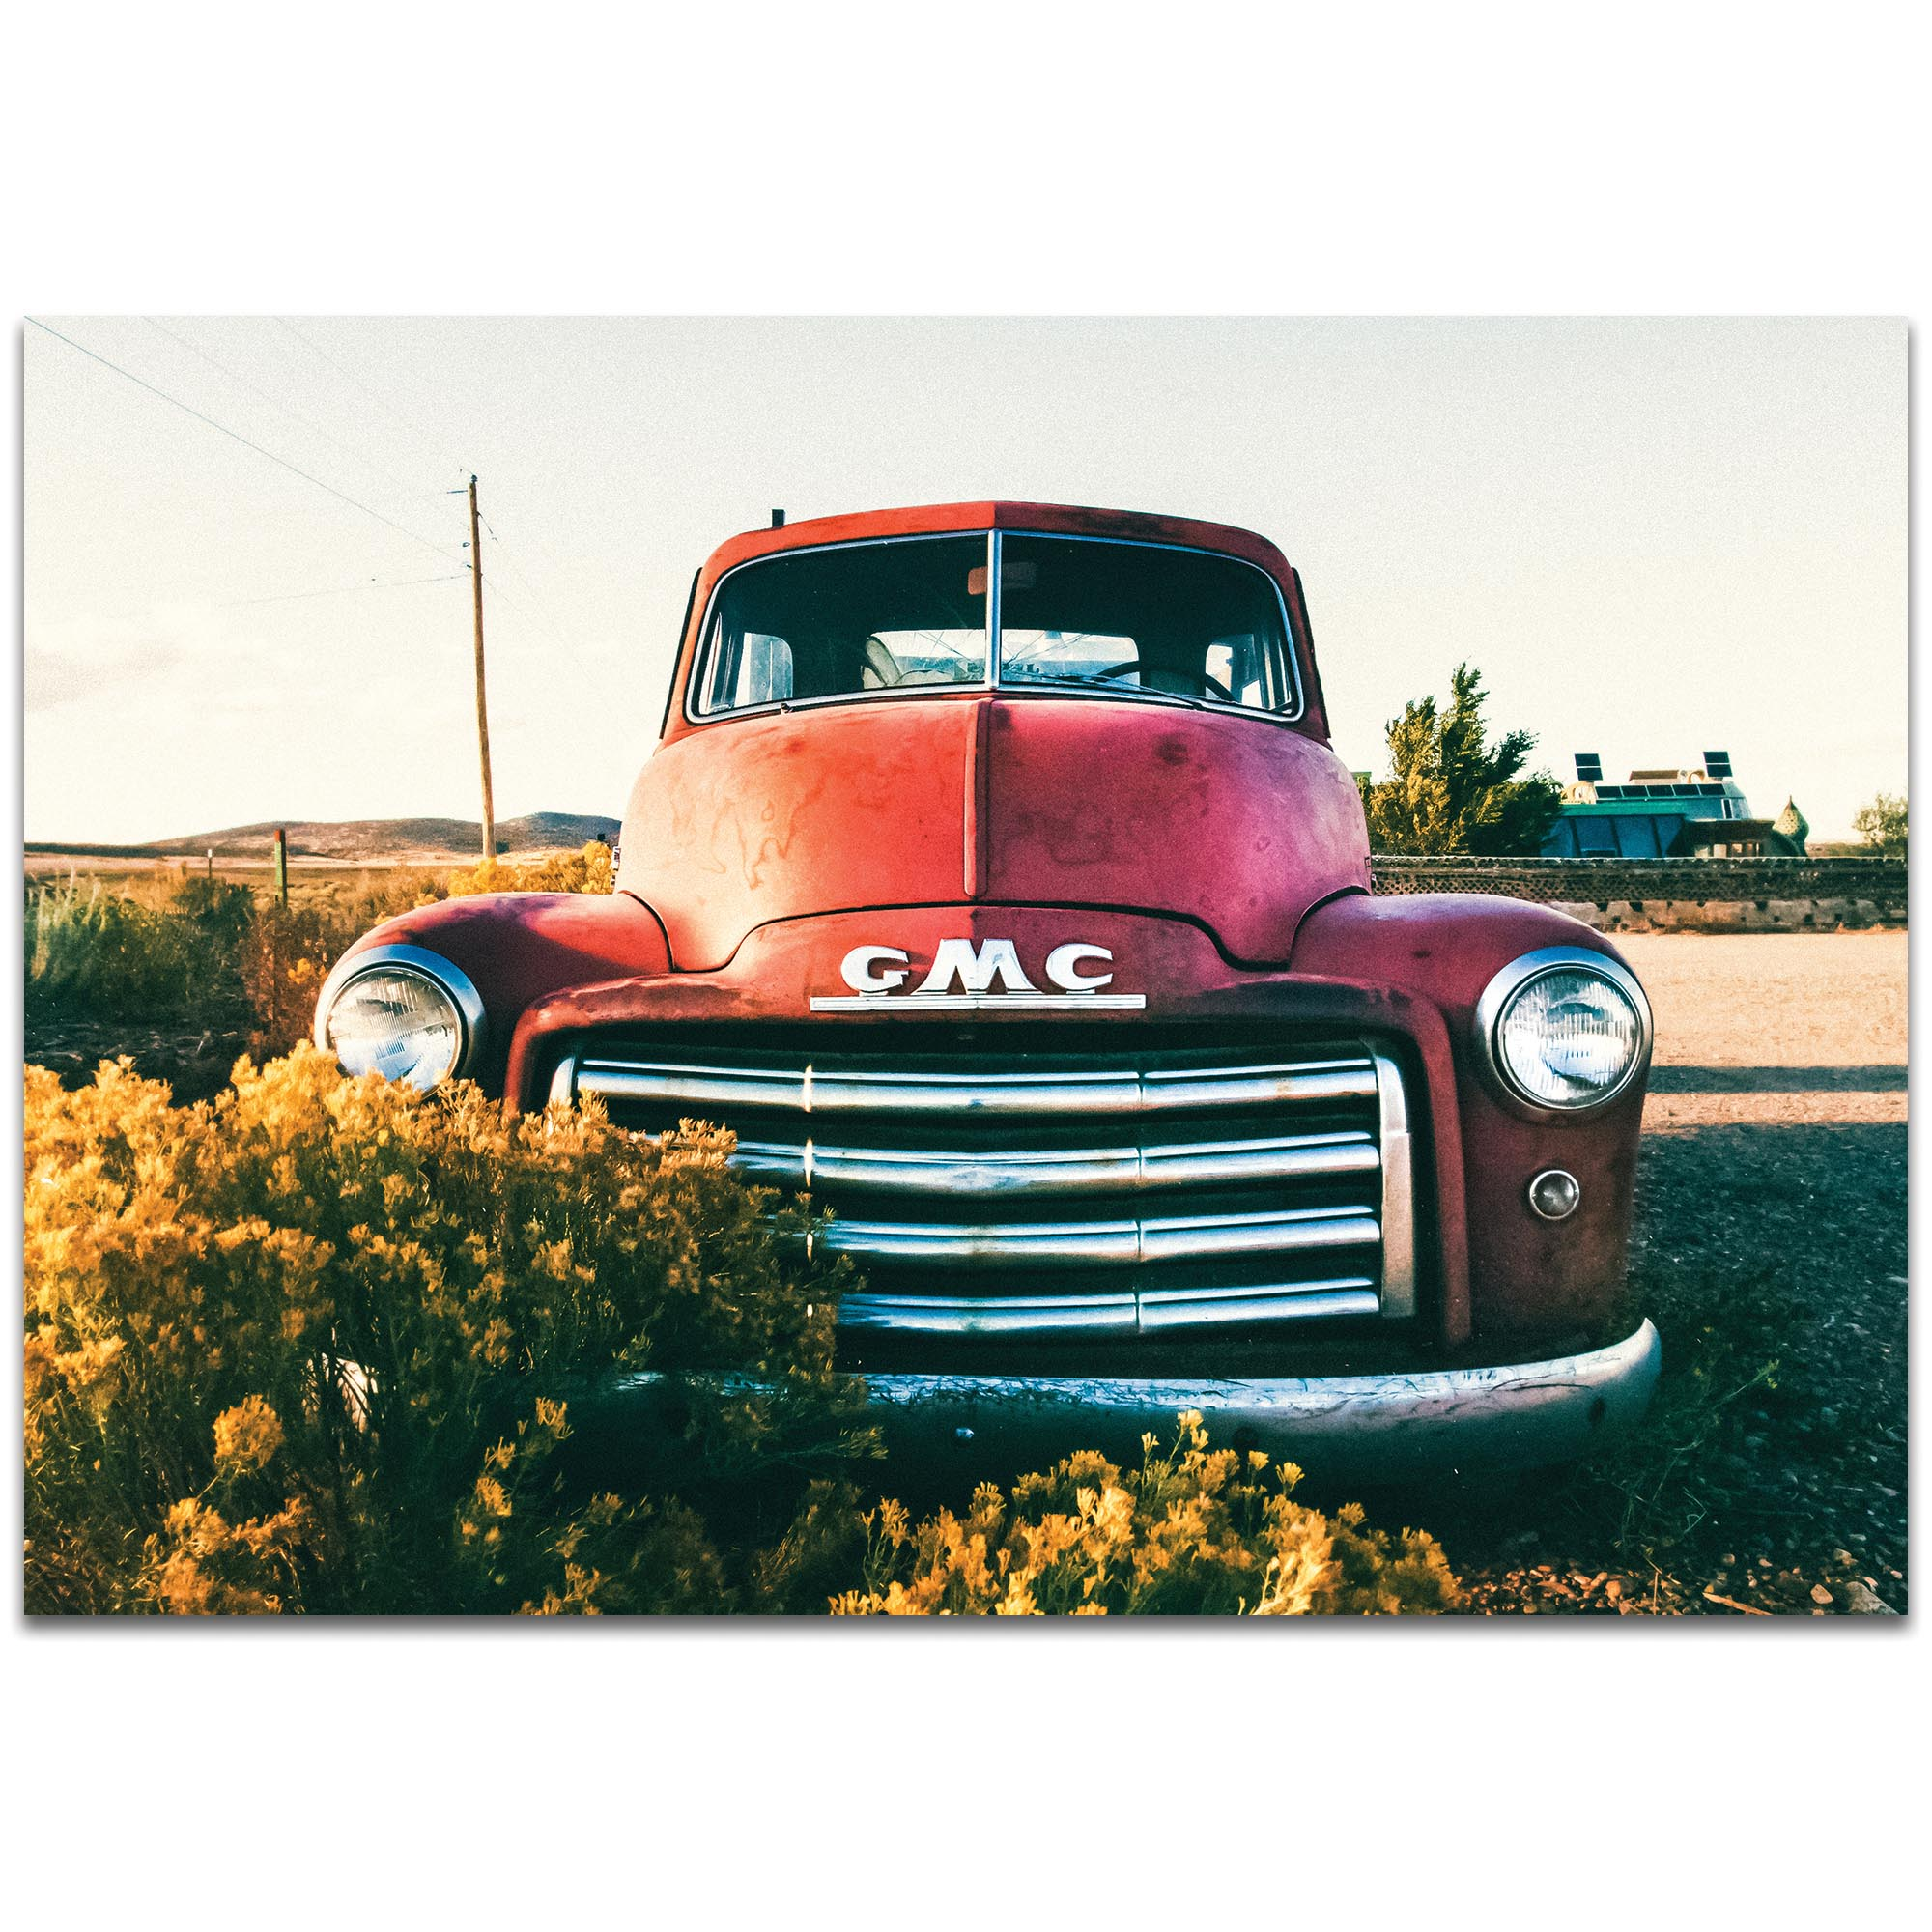 GMC Grill by Meirav Levy - Americana Wall Art on Metal or Plexiglass